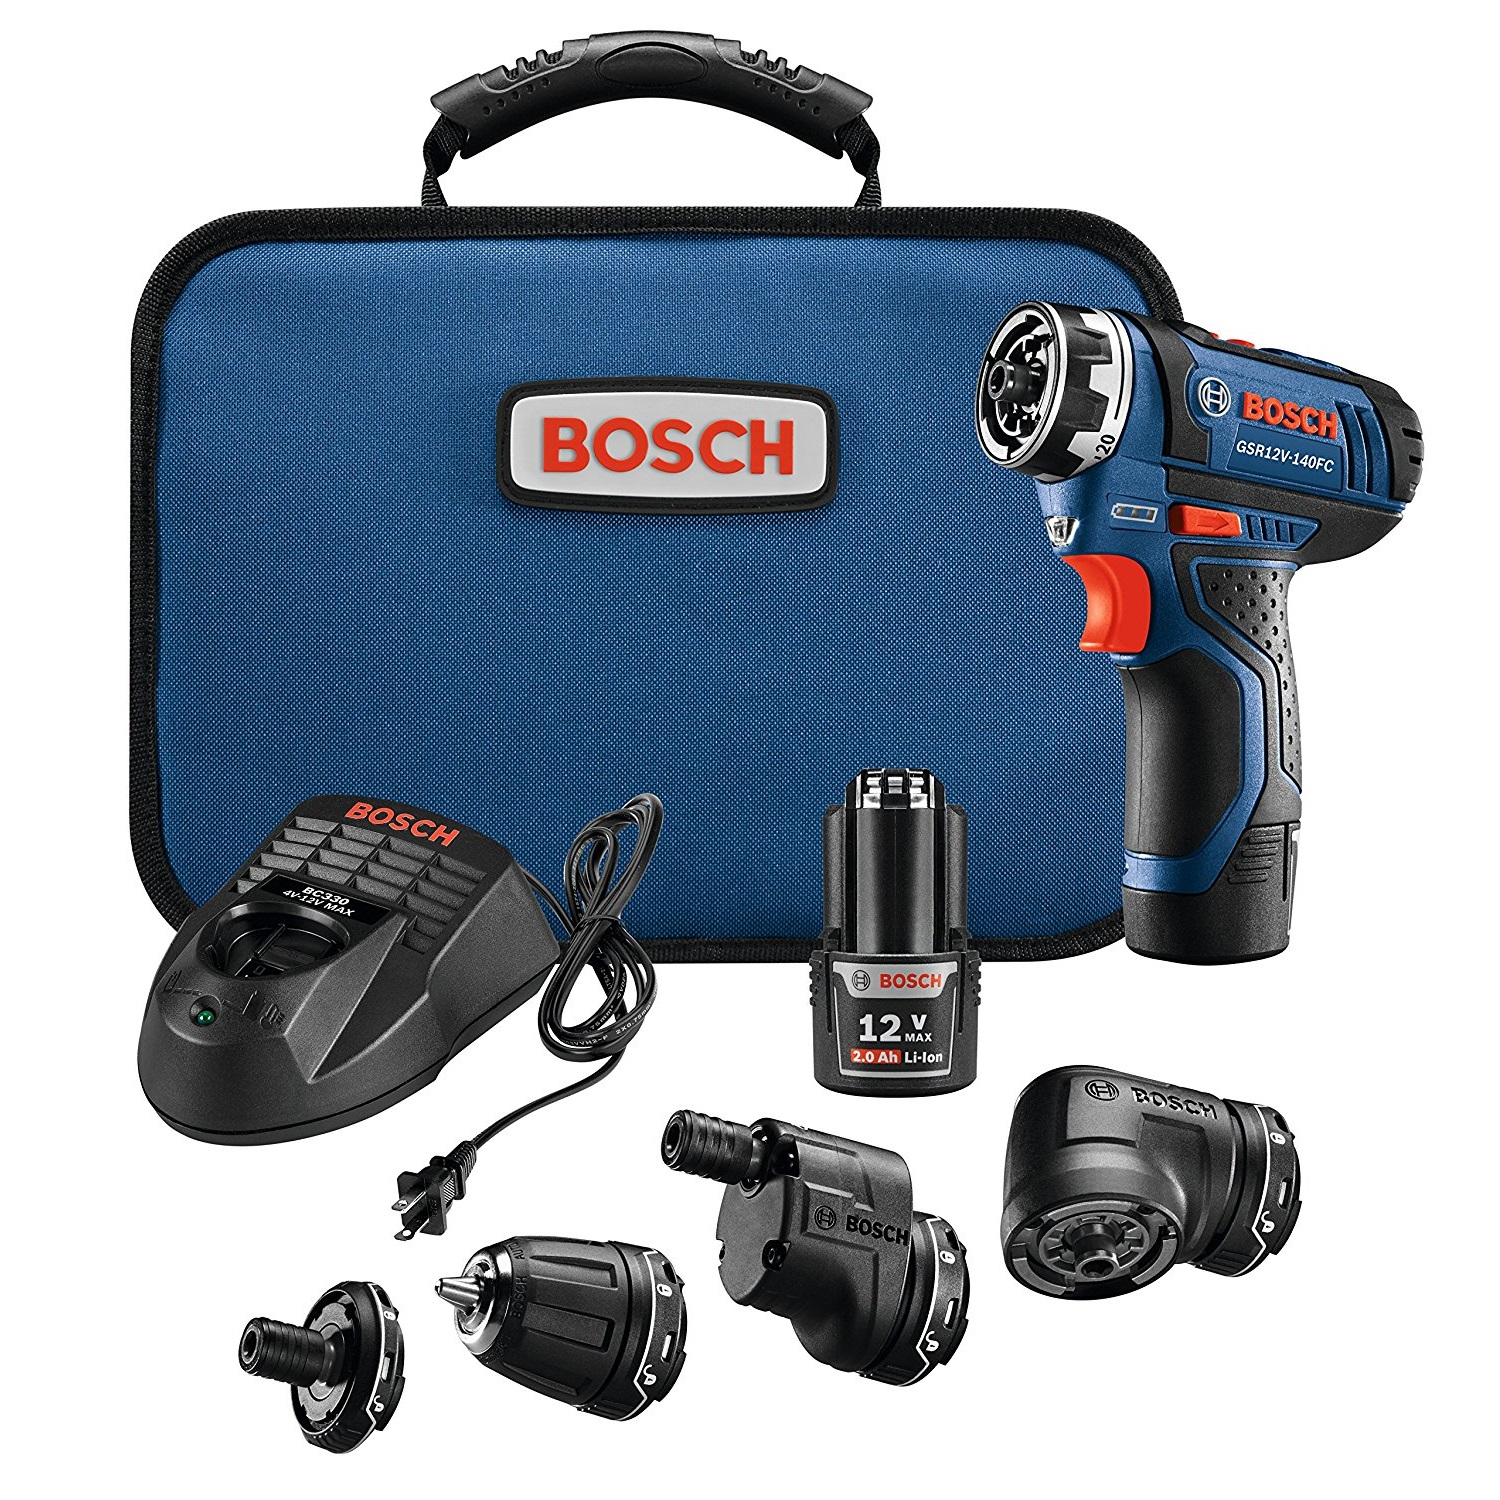 10. Bosch 5-In-1 Drill and Driver